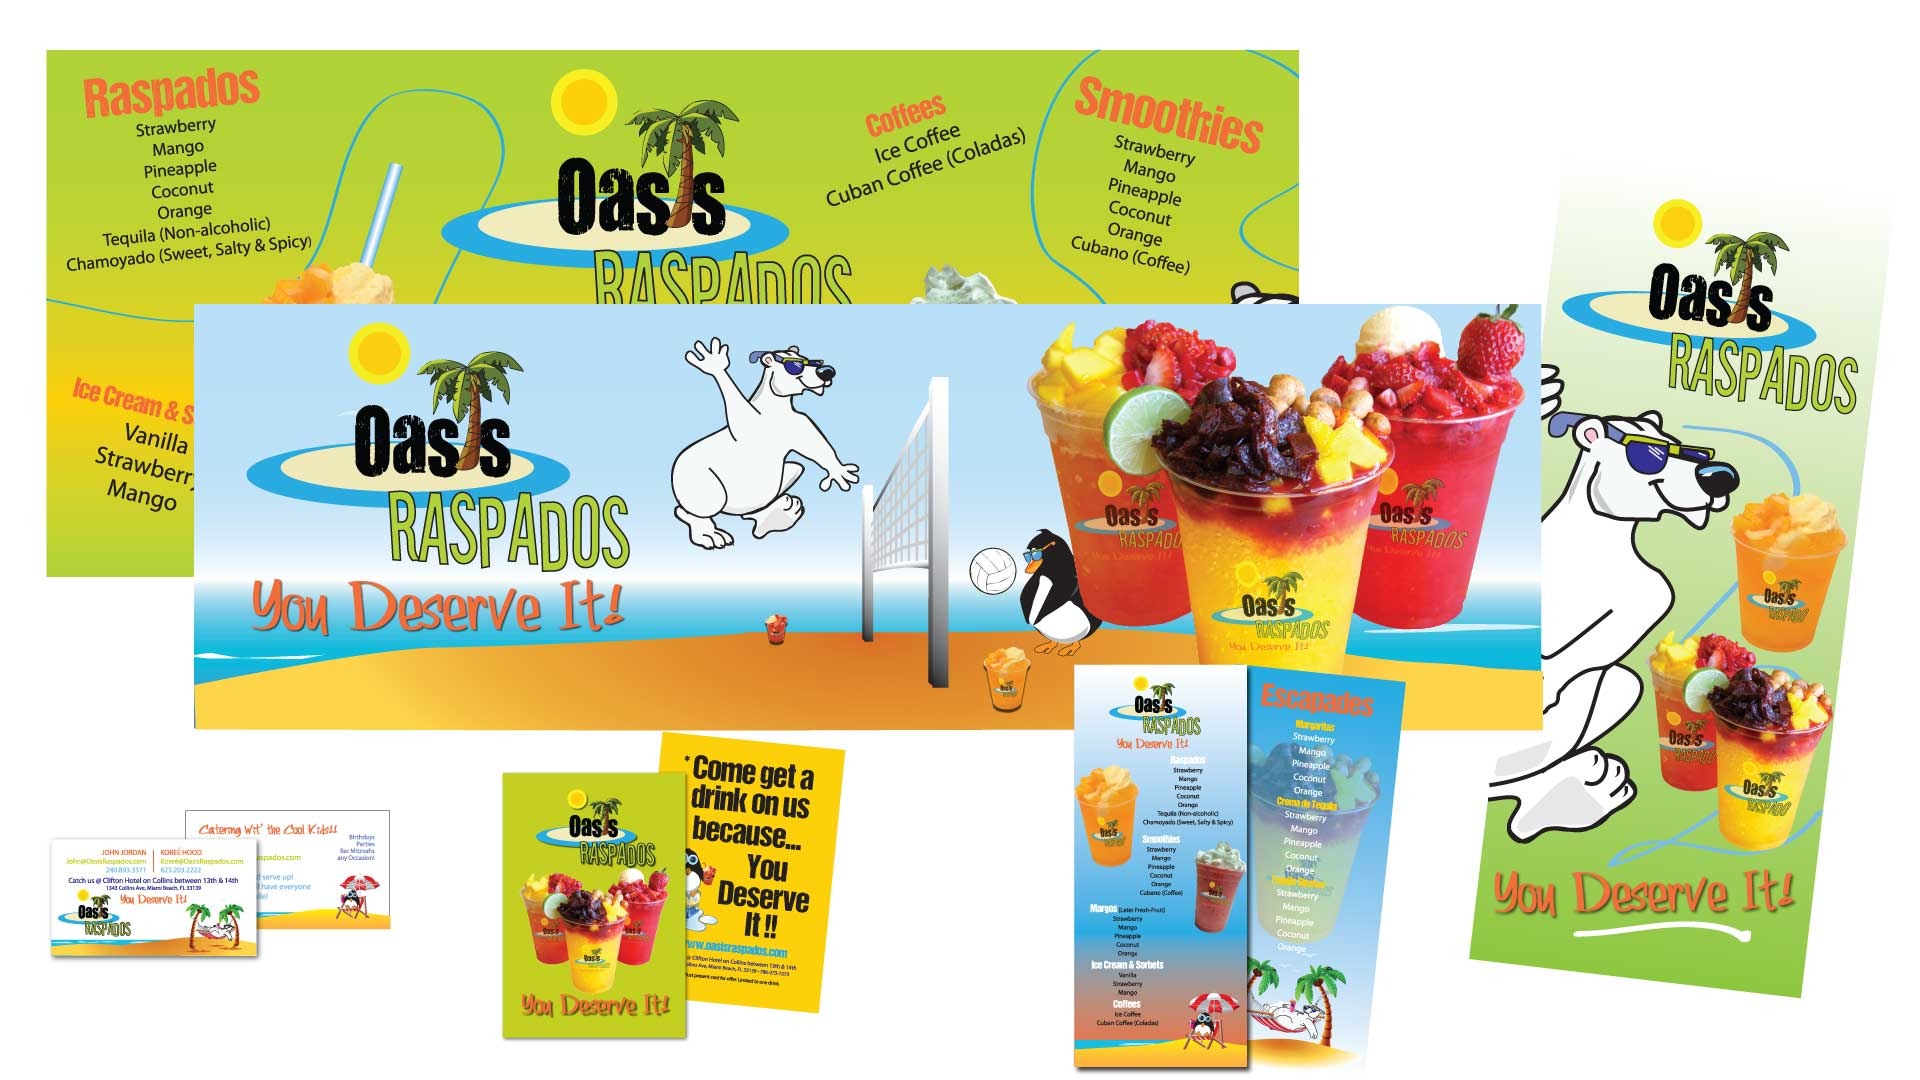 Printed items for Oasis Raspados